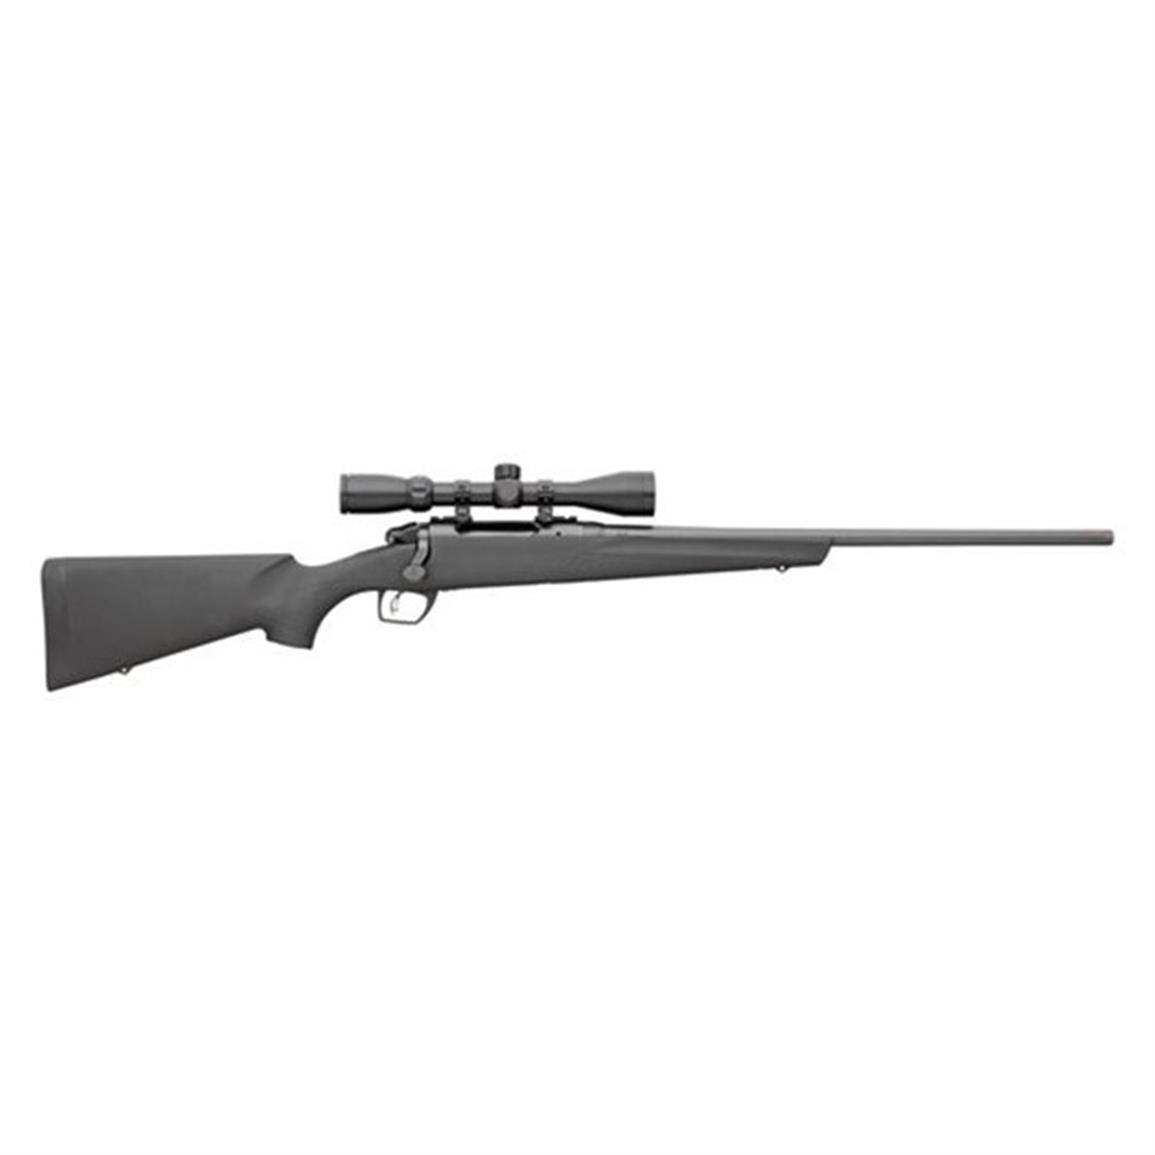 "Remington 783, Bolt Action, .270 Winchester, 22"" Barrel, 3-9x40mm Scope, 4 Rounds"